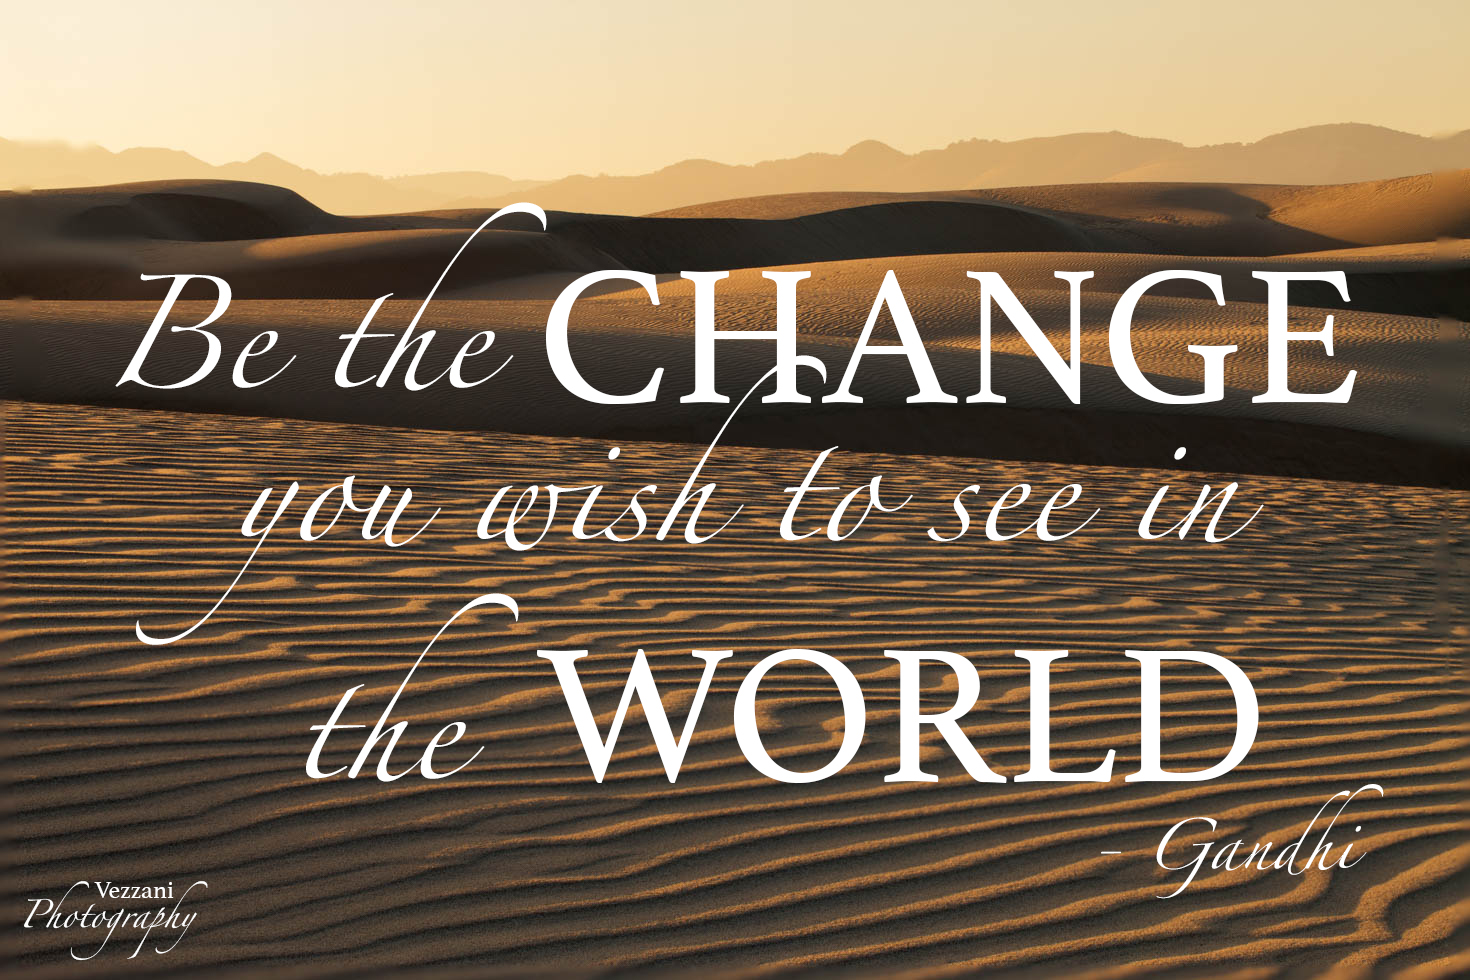 Be the Change you with to see in the World Gandhi Picture Quotes